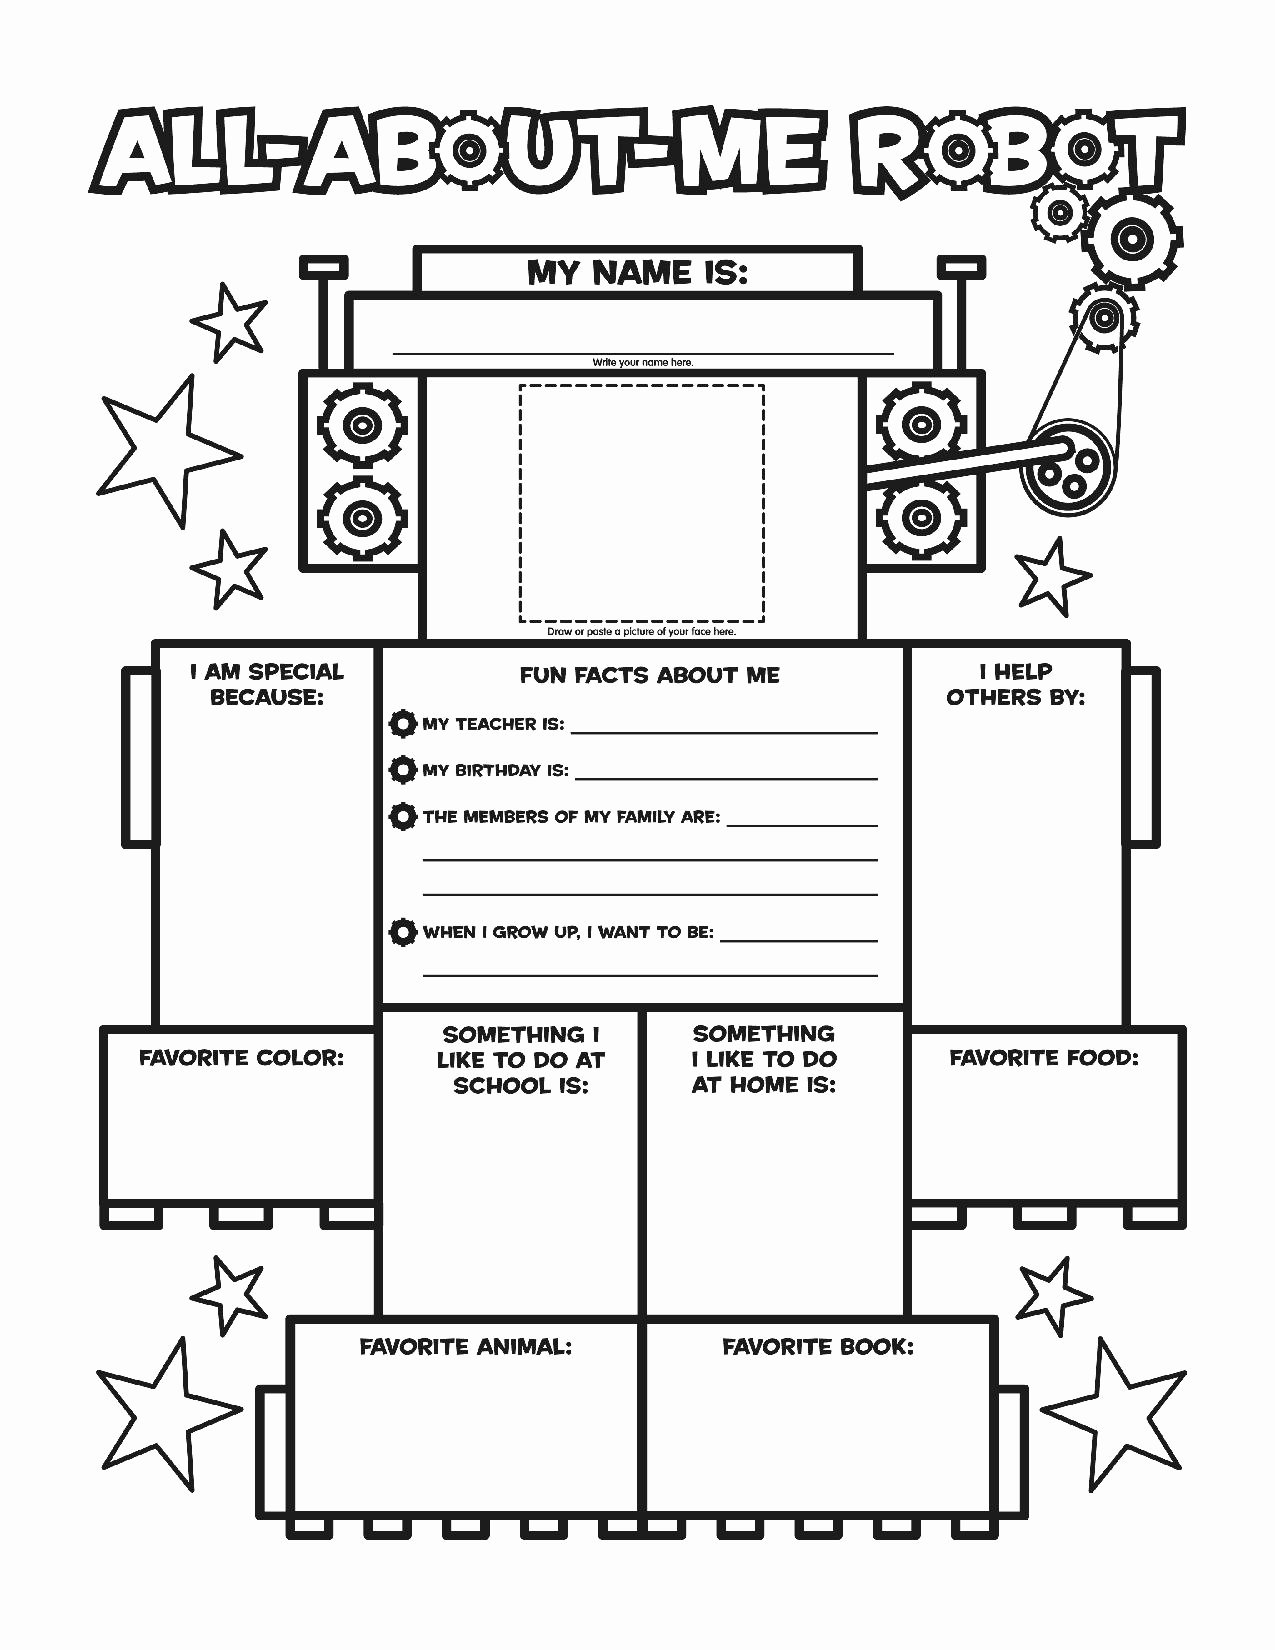 All About Me Printable Worksheet Unique All About Me Worksheetstake the Pen